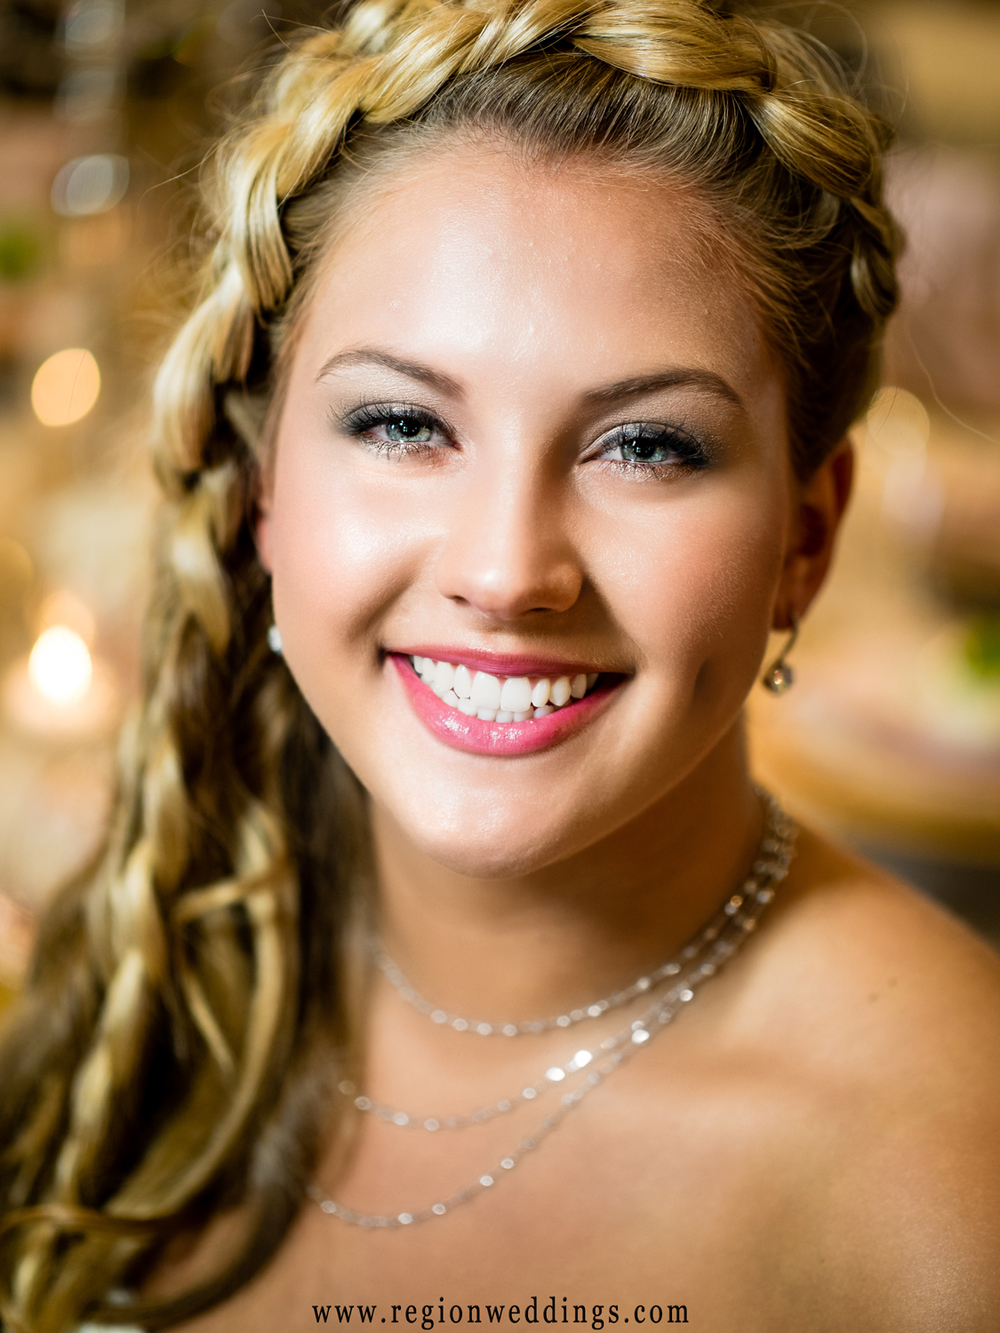 Beautiful bride with braided hair.